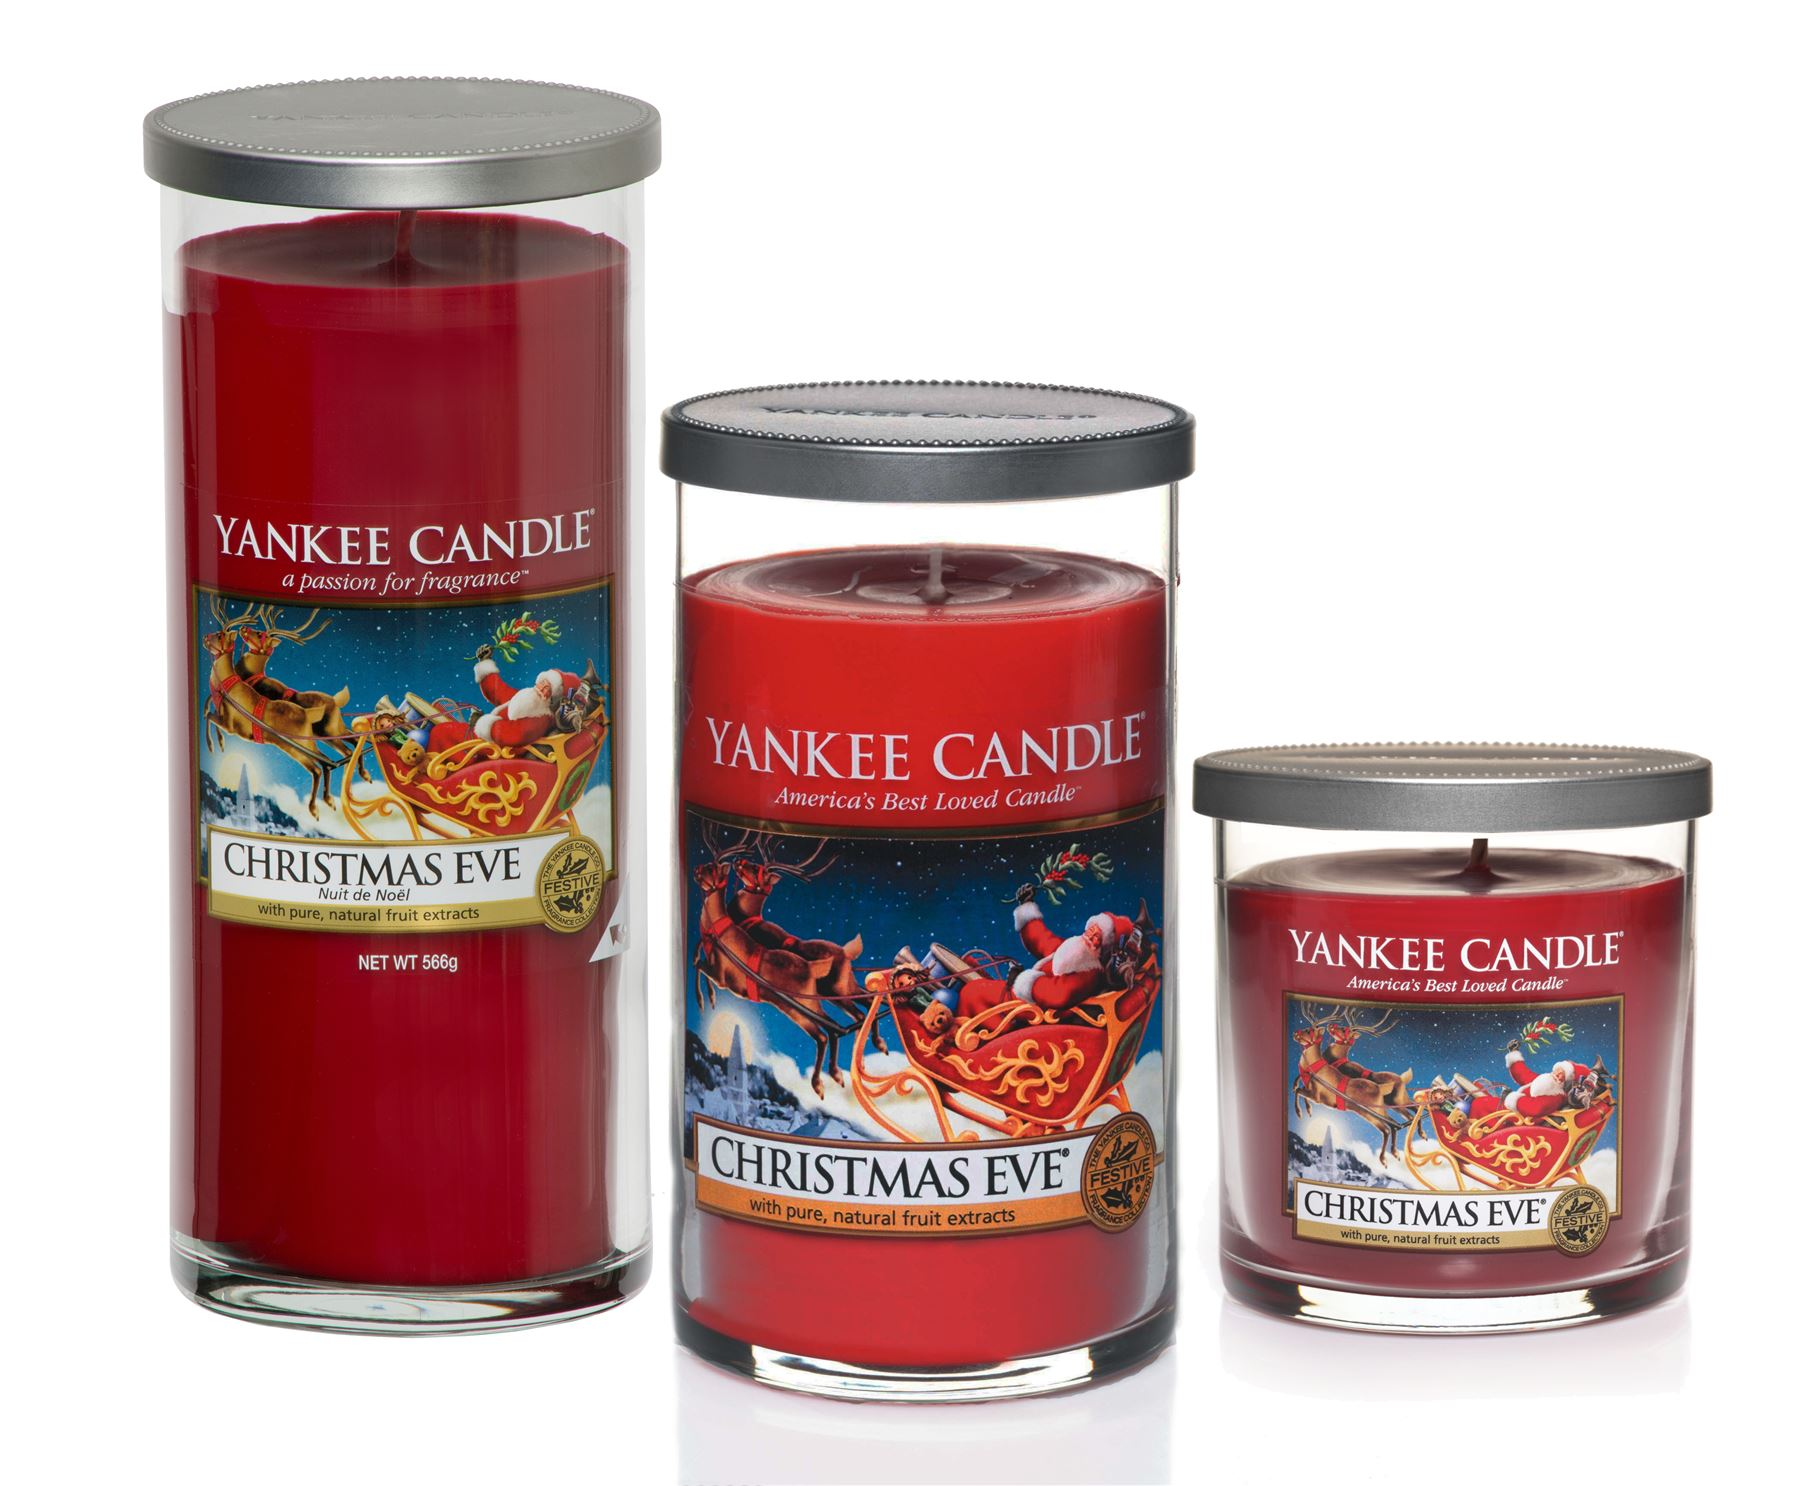 Yankee Candle Decor Pillar Fragranced Candles Choose Your